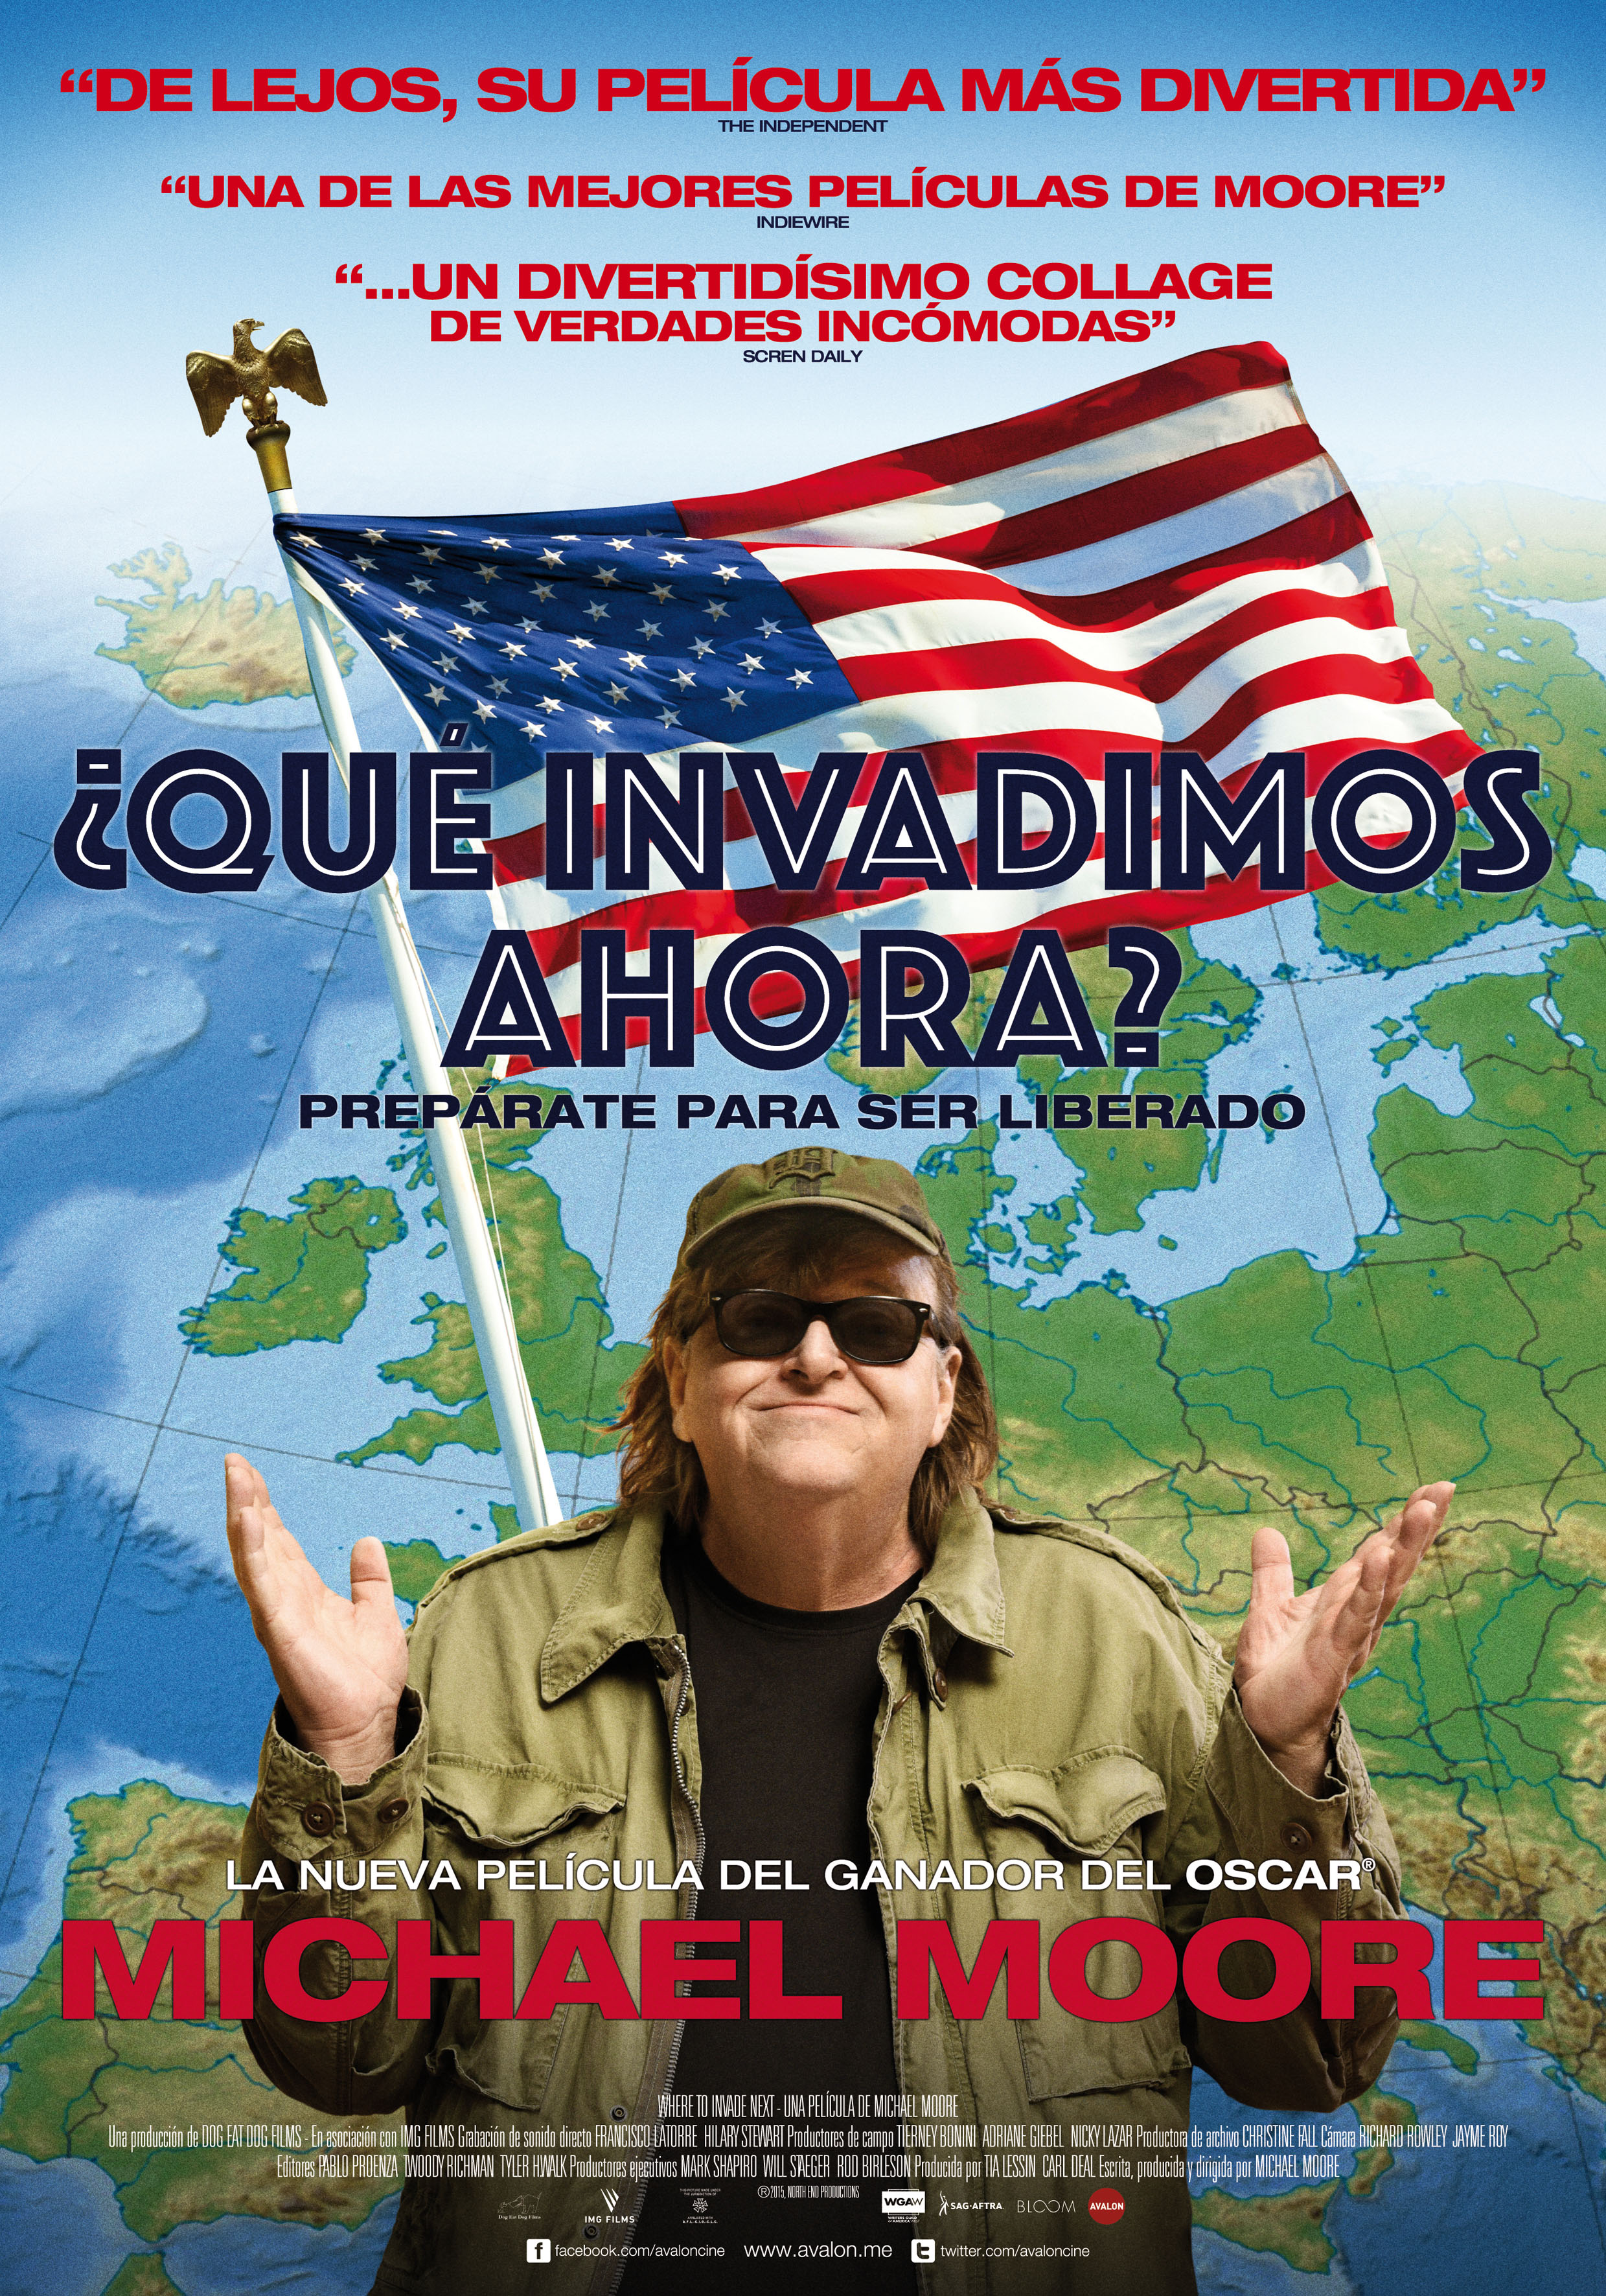 ¿Qué invadimos ahora? Michael Moore documental 2016 Where To Invade Next